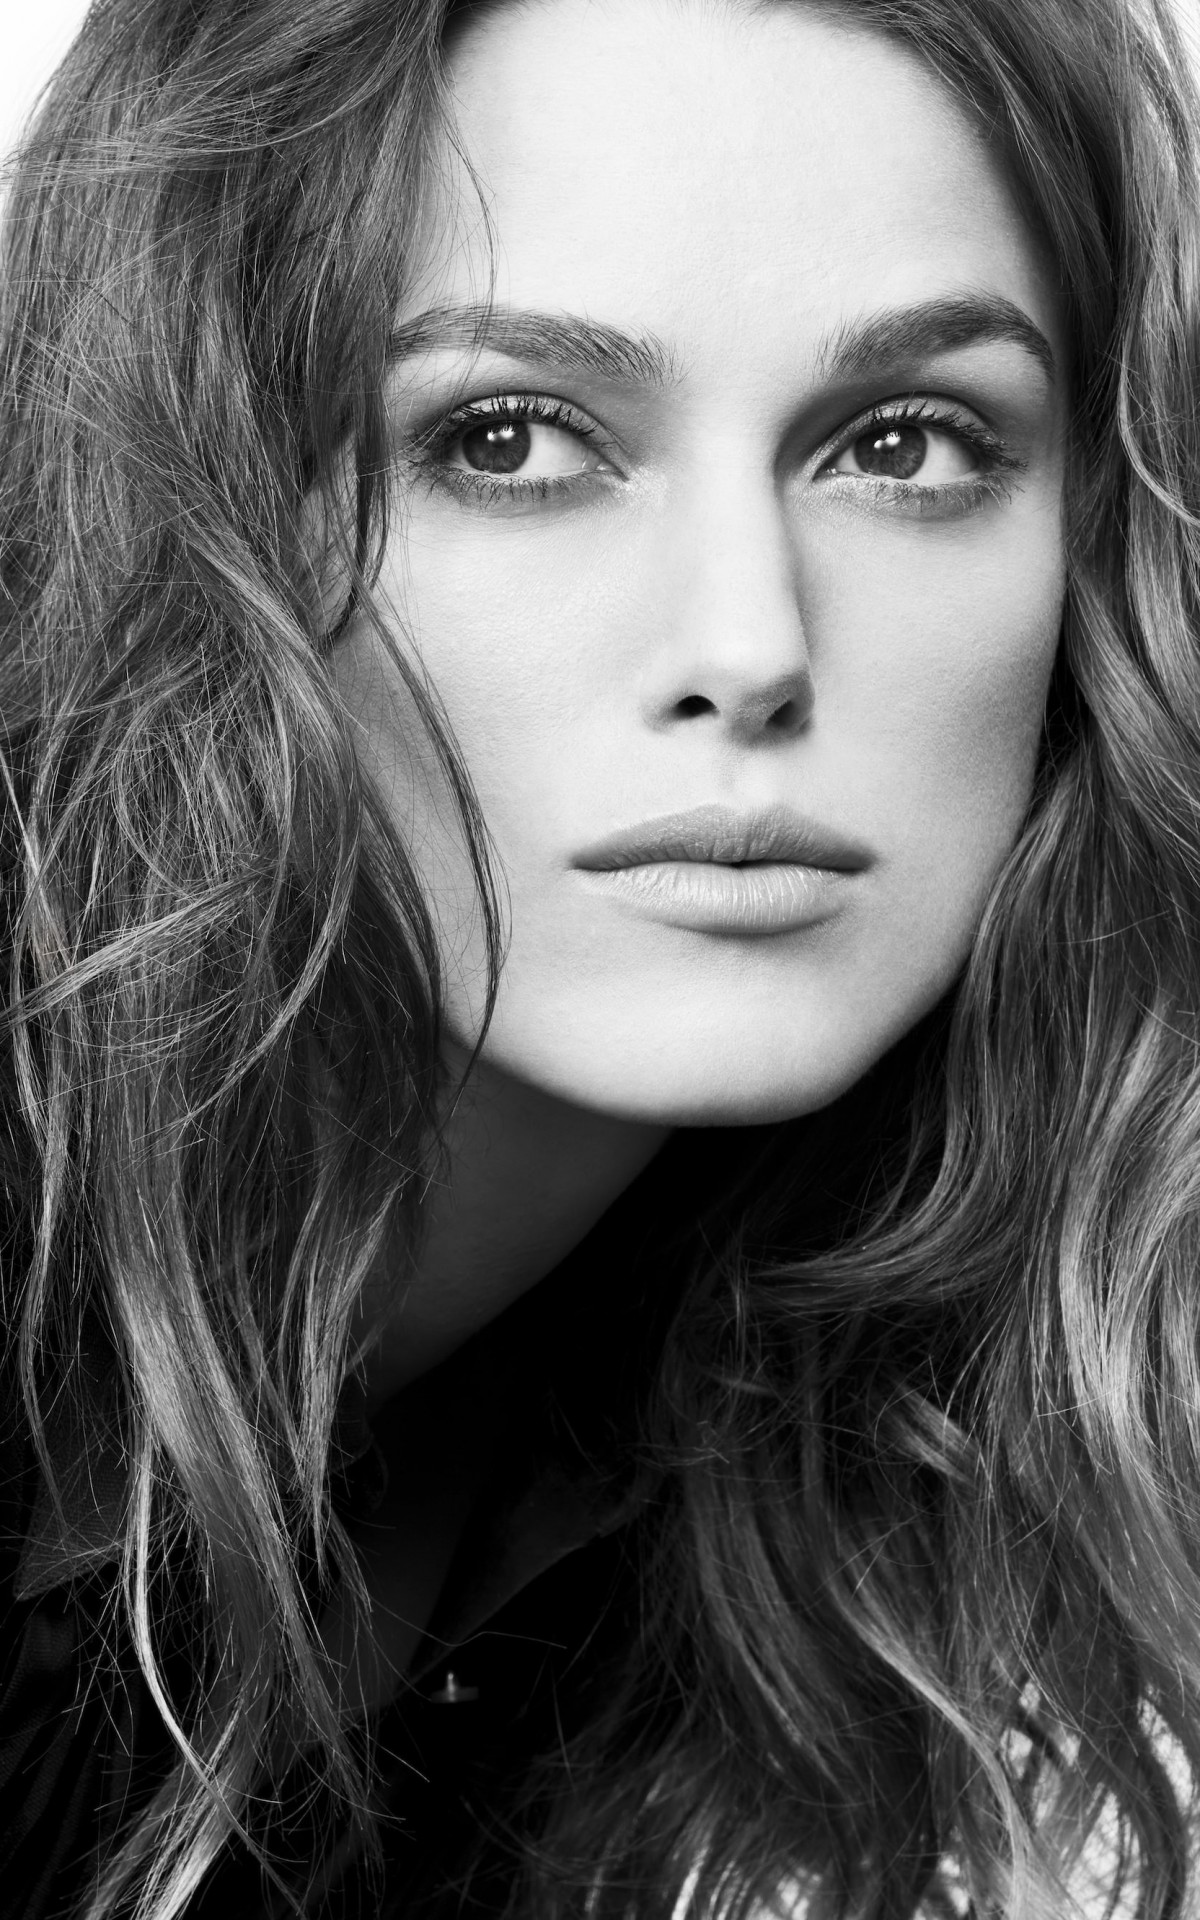 Keira Knightley in Black & White Wallpaper for Amazon Kindle Fire HDX